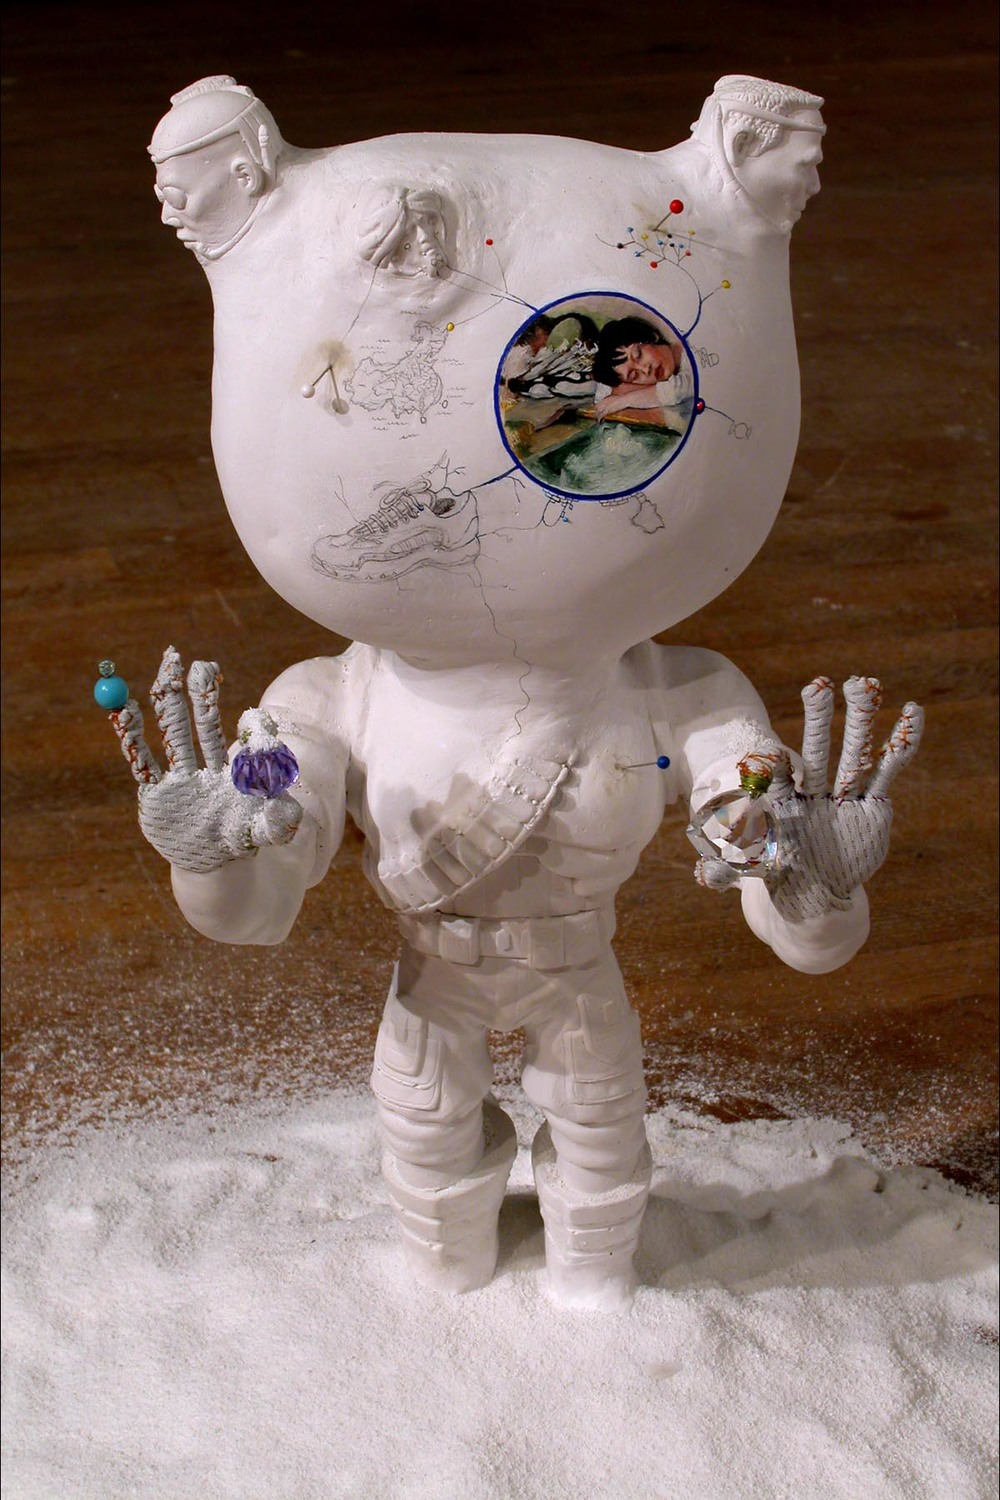 Extreme Soldier (Worker) , 2004. Installed at Living Arts, Tulsa, Oklahoma as part of  Too Much Candy .  Plaster, oil paint, fabric, thread, beads, detergent. Variable dimensions, about 22 inches tall.